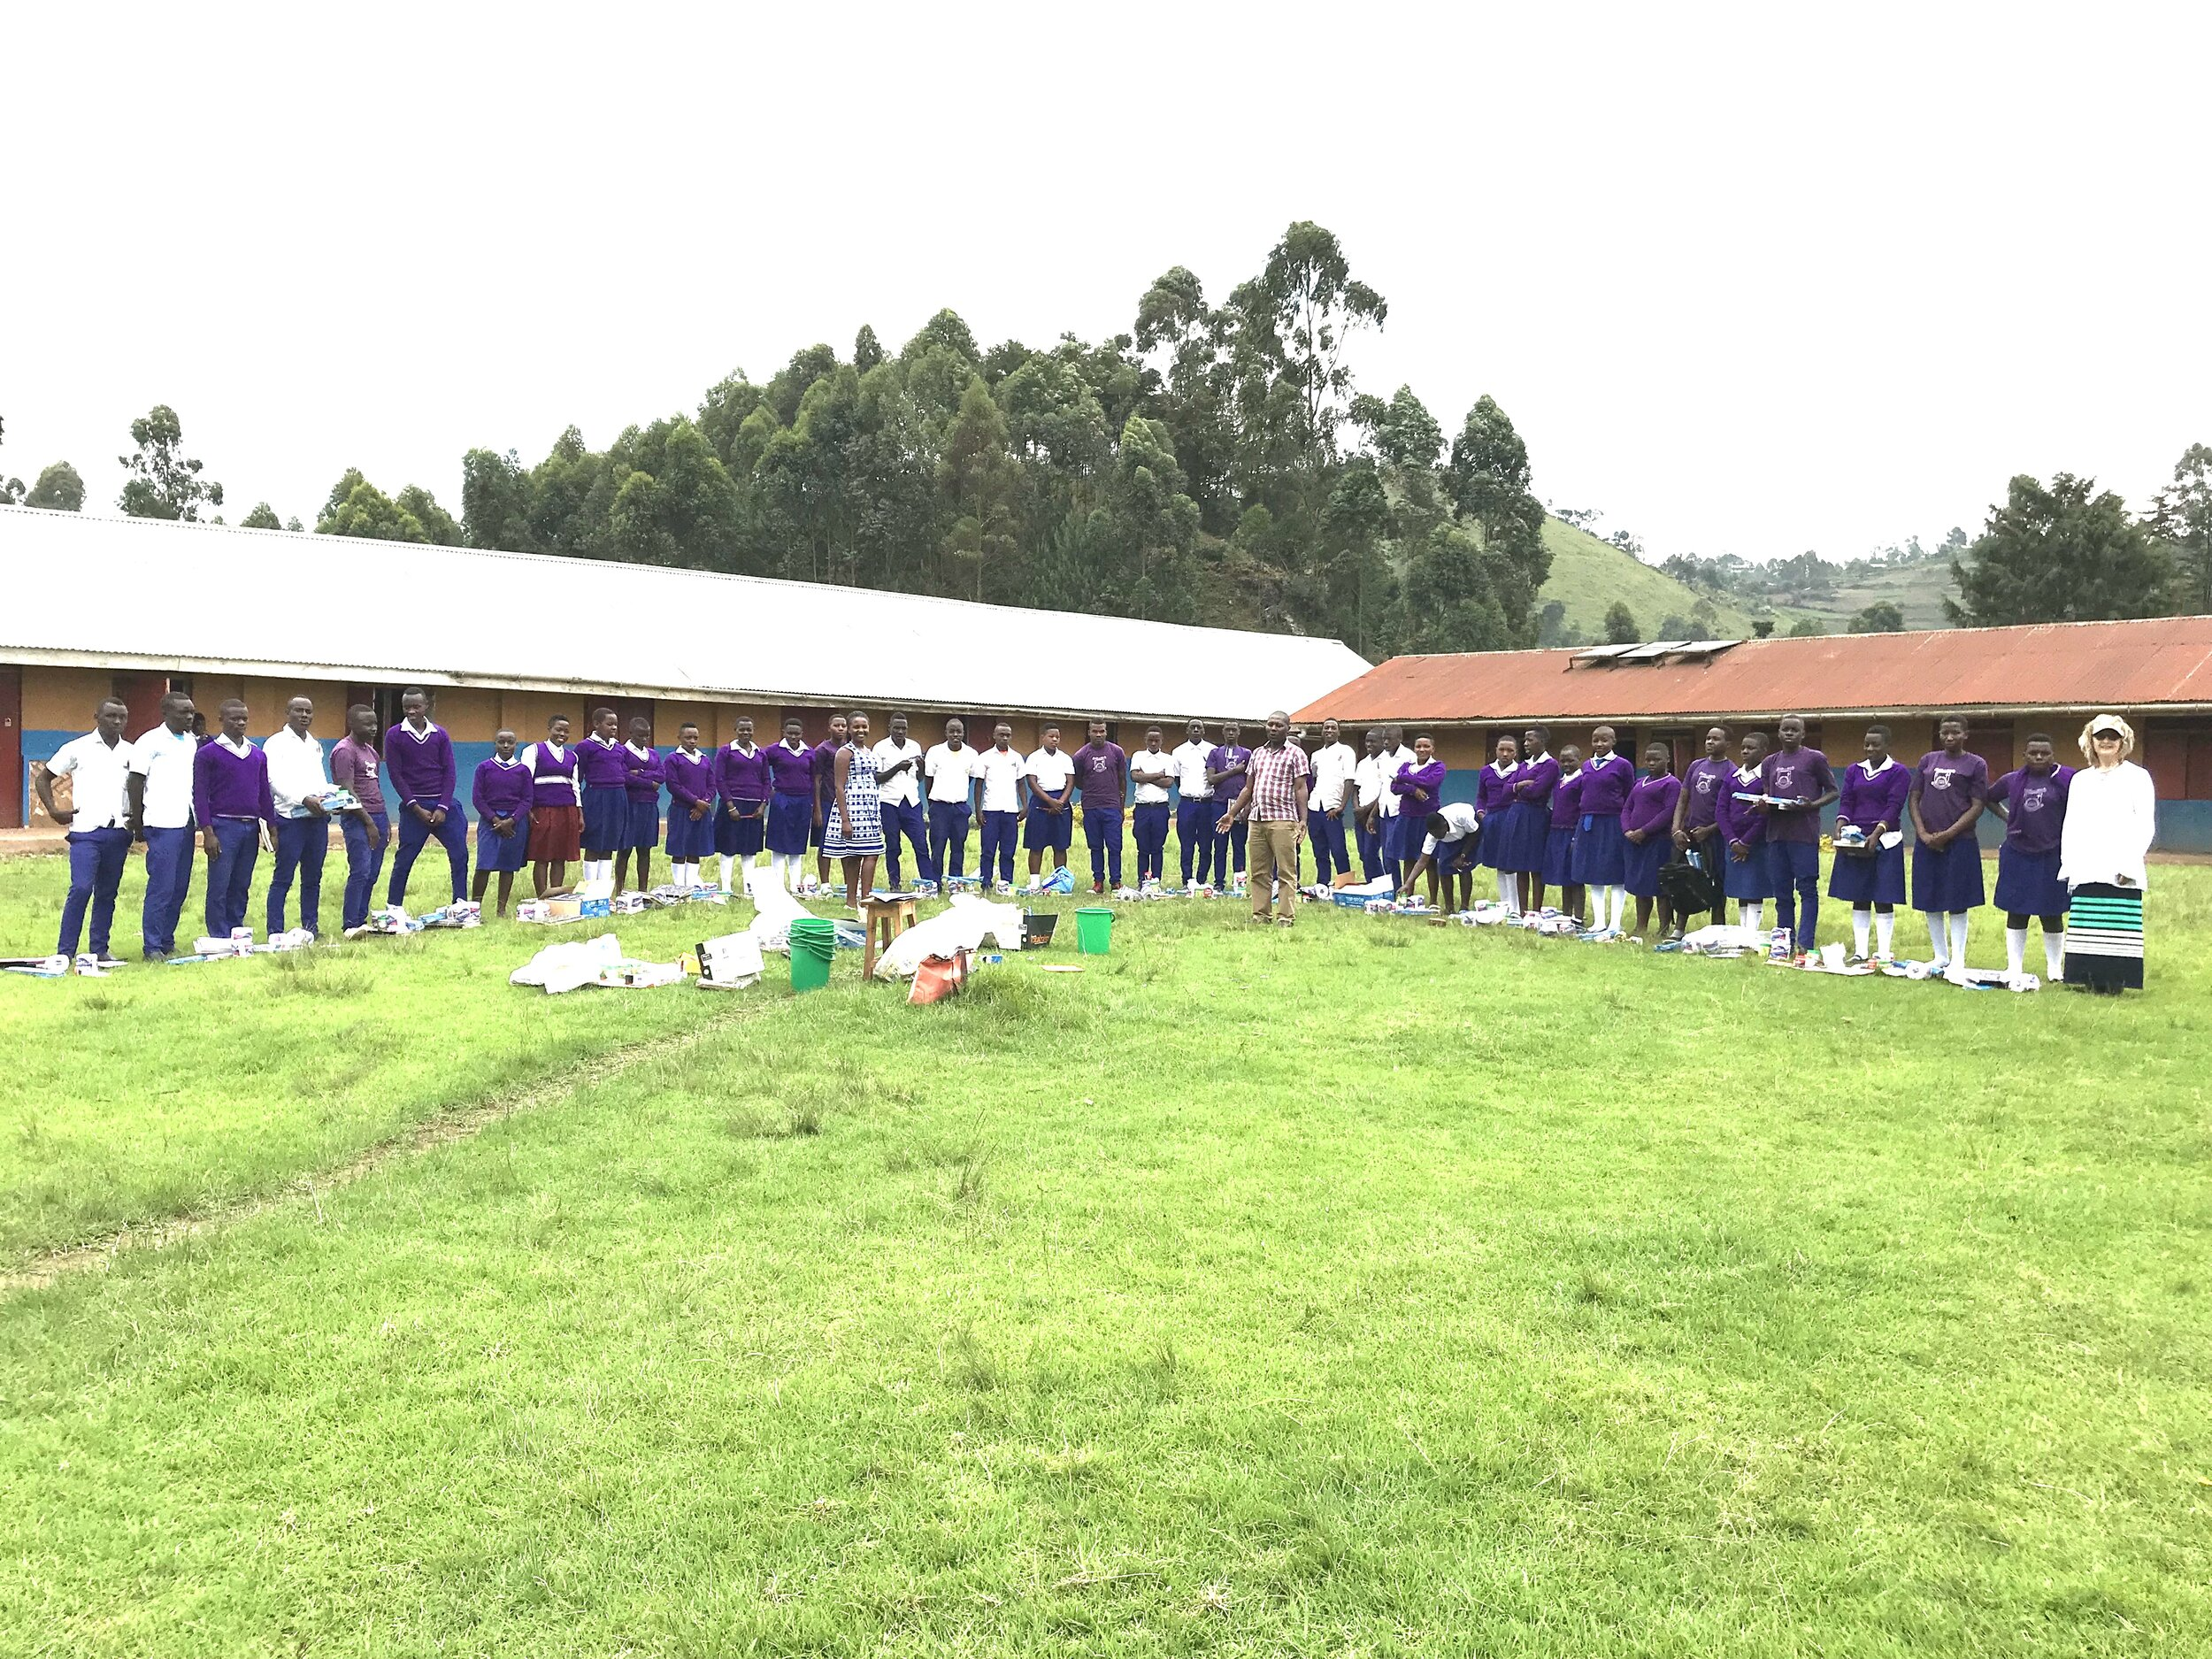 MukoHOPE kids at Muko High School - new term begins and they receive their supplies purchased by their sponsors generous support.